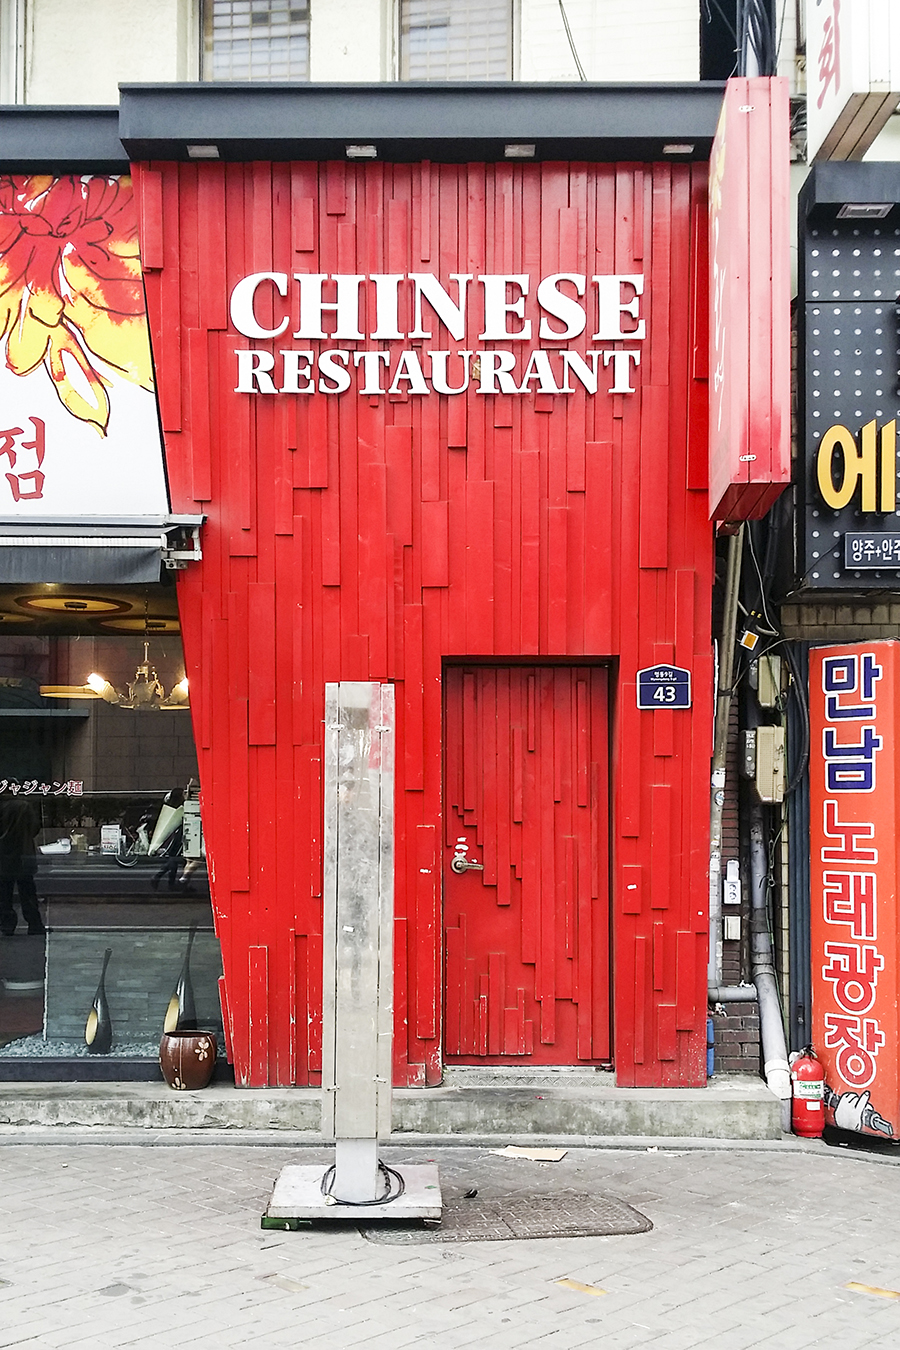 Chinese Restaurant in the shape of a chinese takeaway box in Myeongdong, Seoul, South Korea.